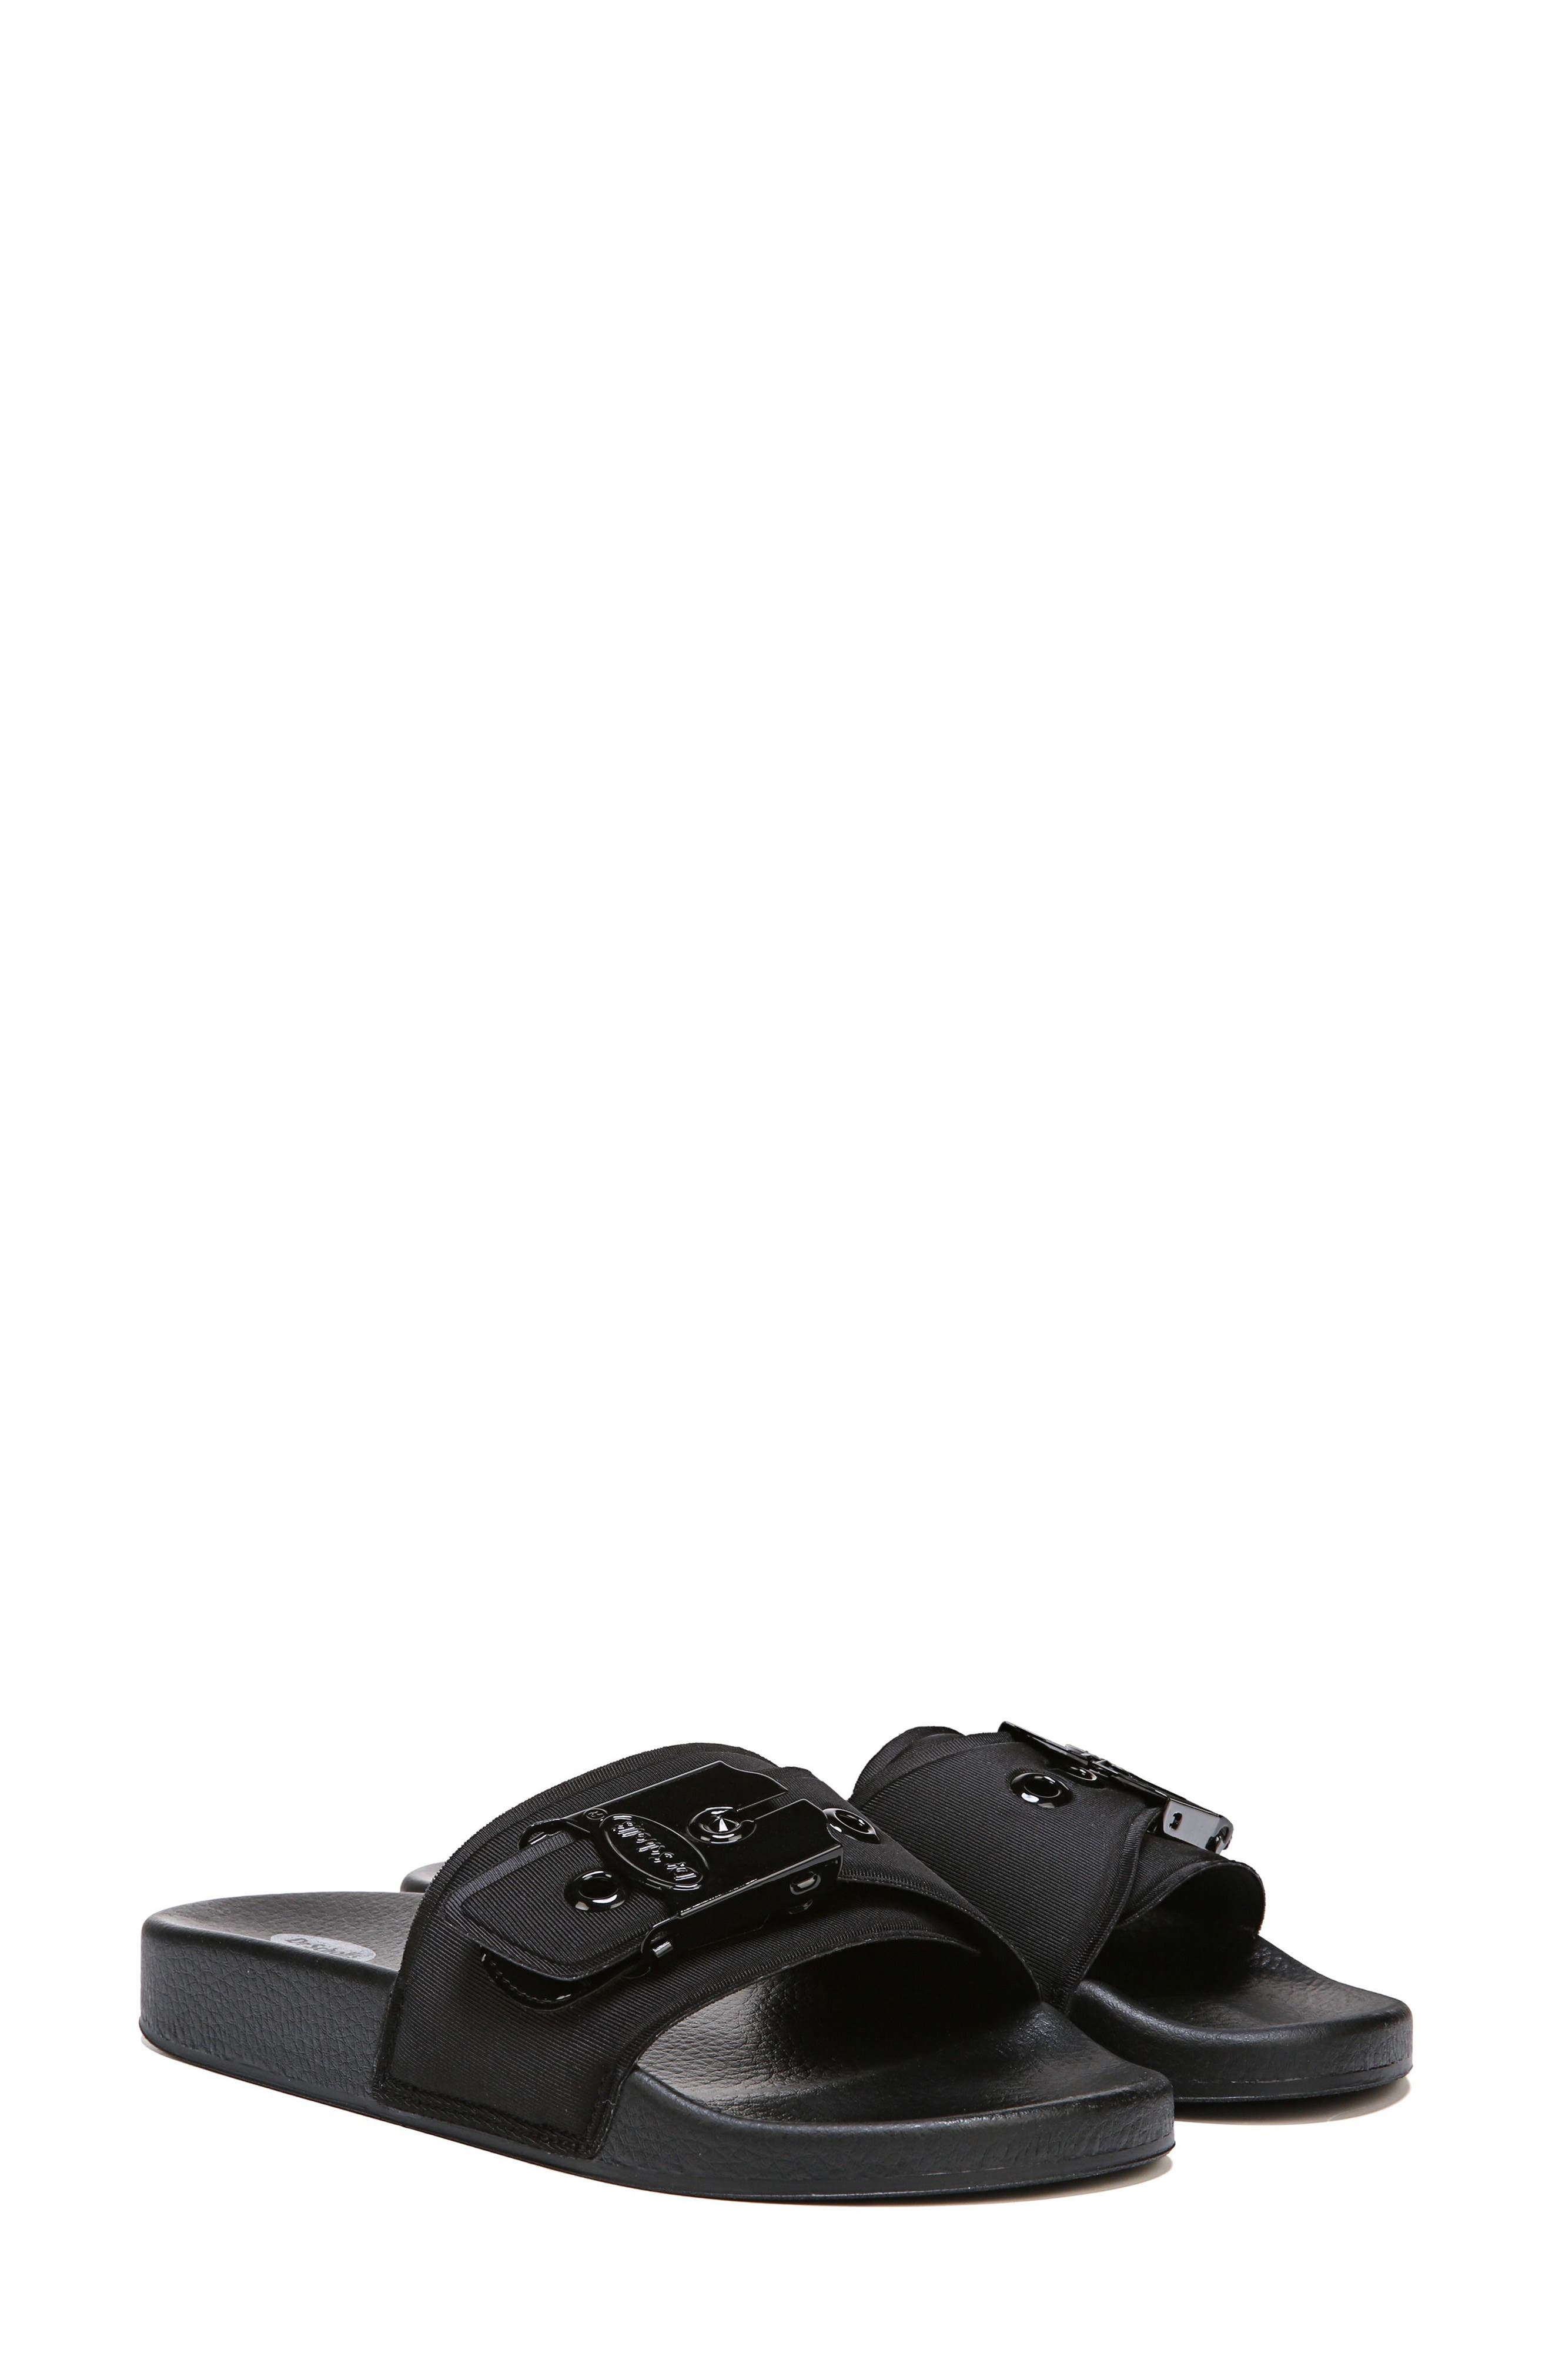 Original Pool Slide Sandal,                         Main,                         color, BLACK